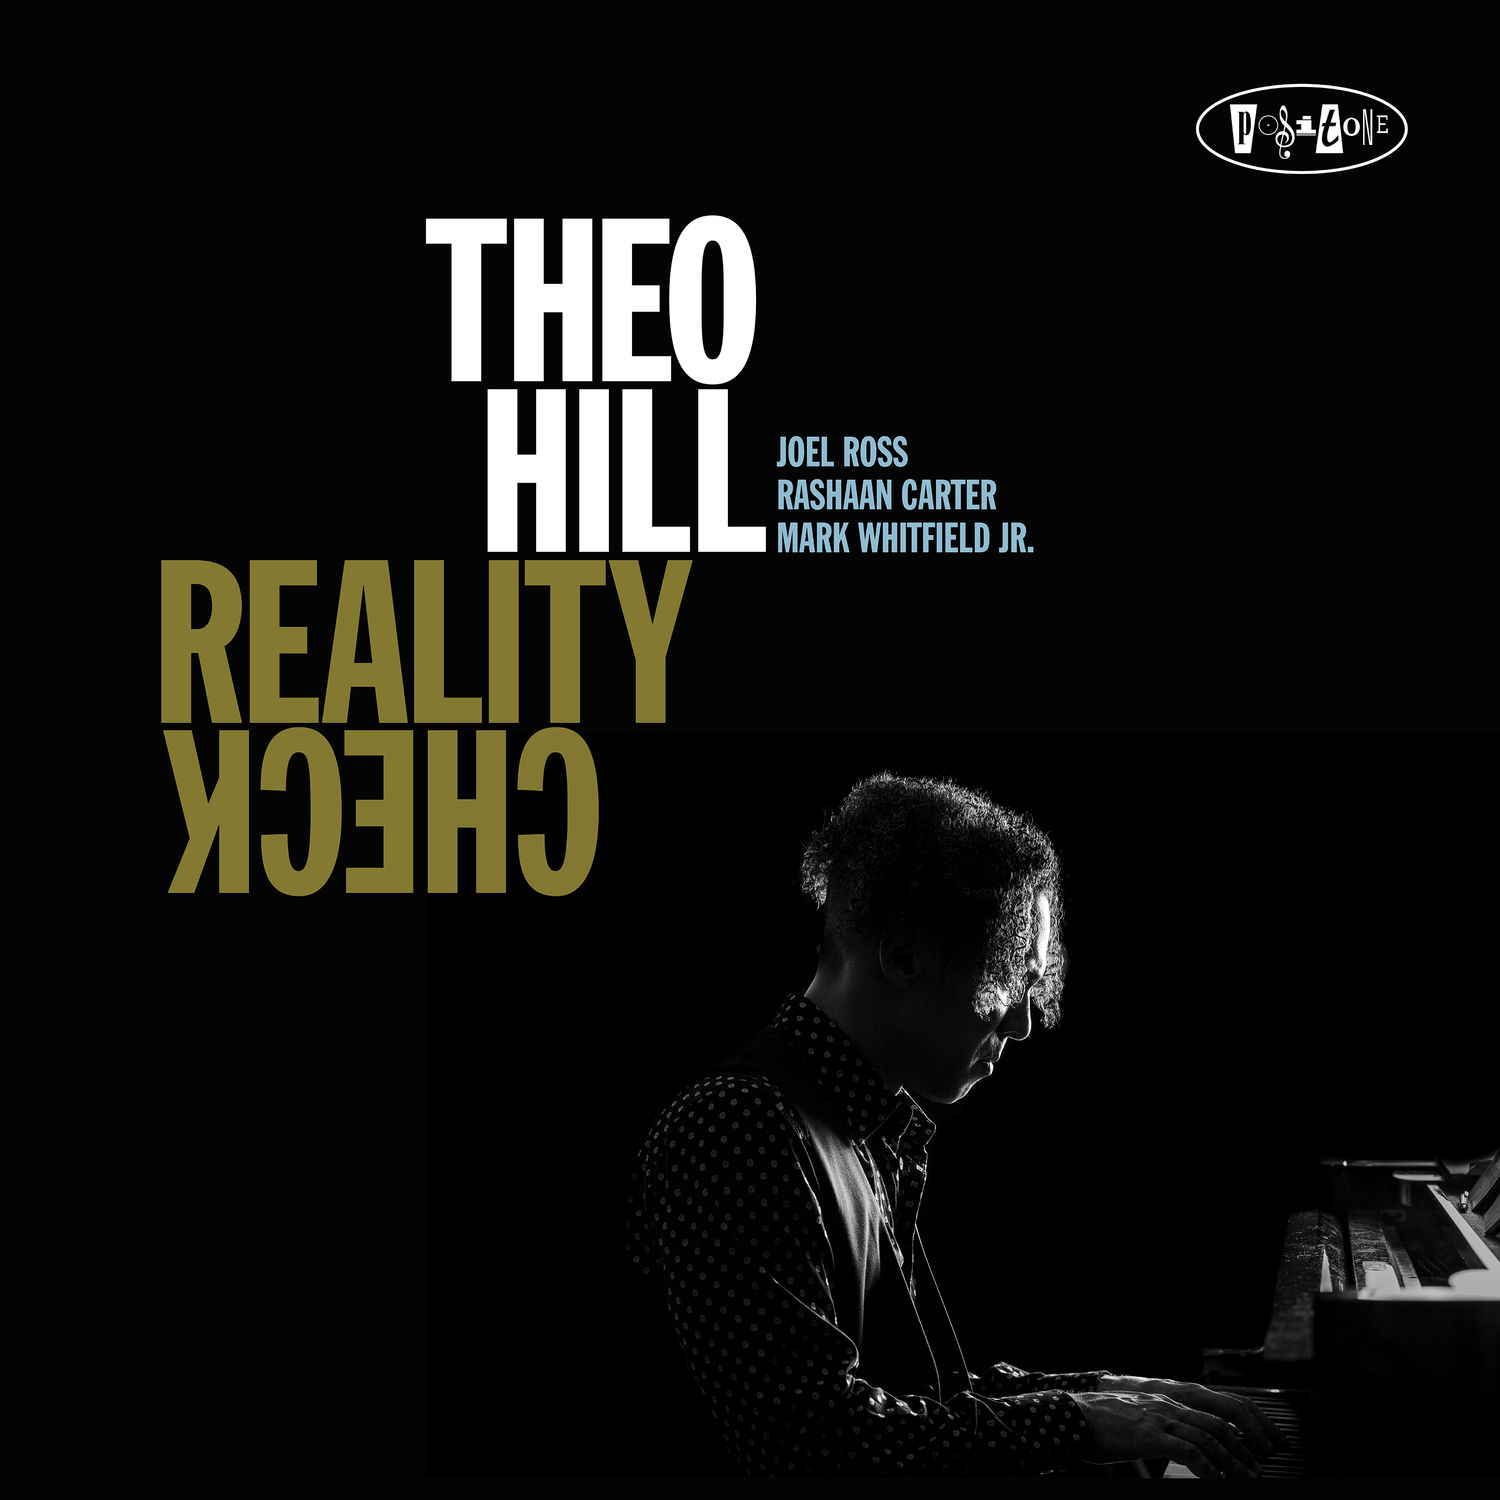 Theo Hill - Reality Check album cover.